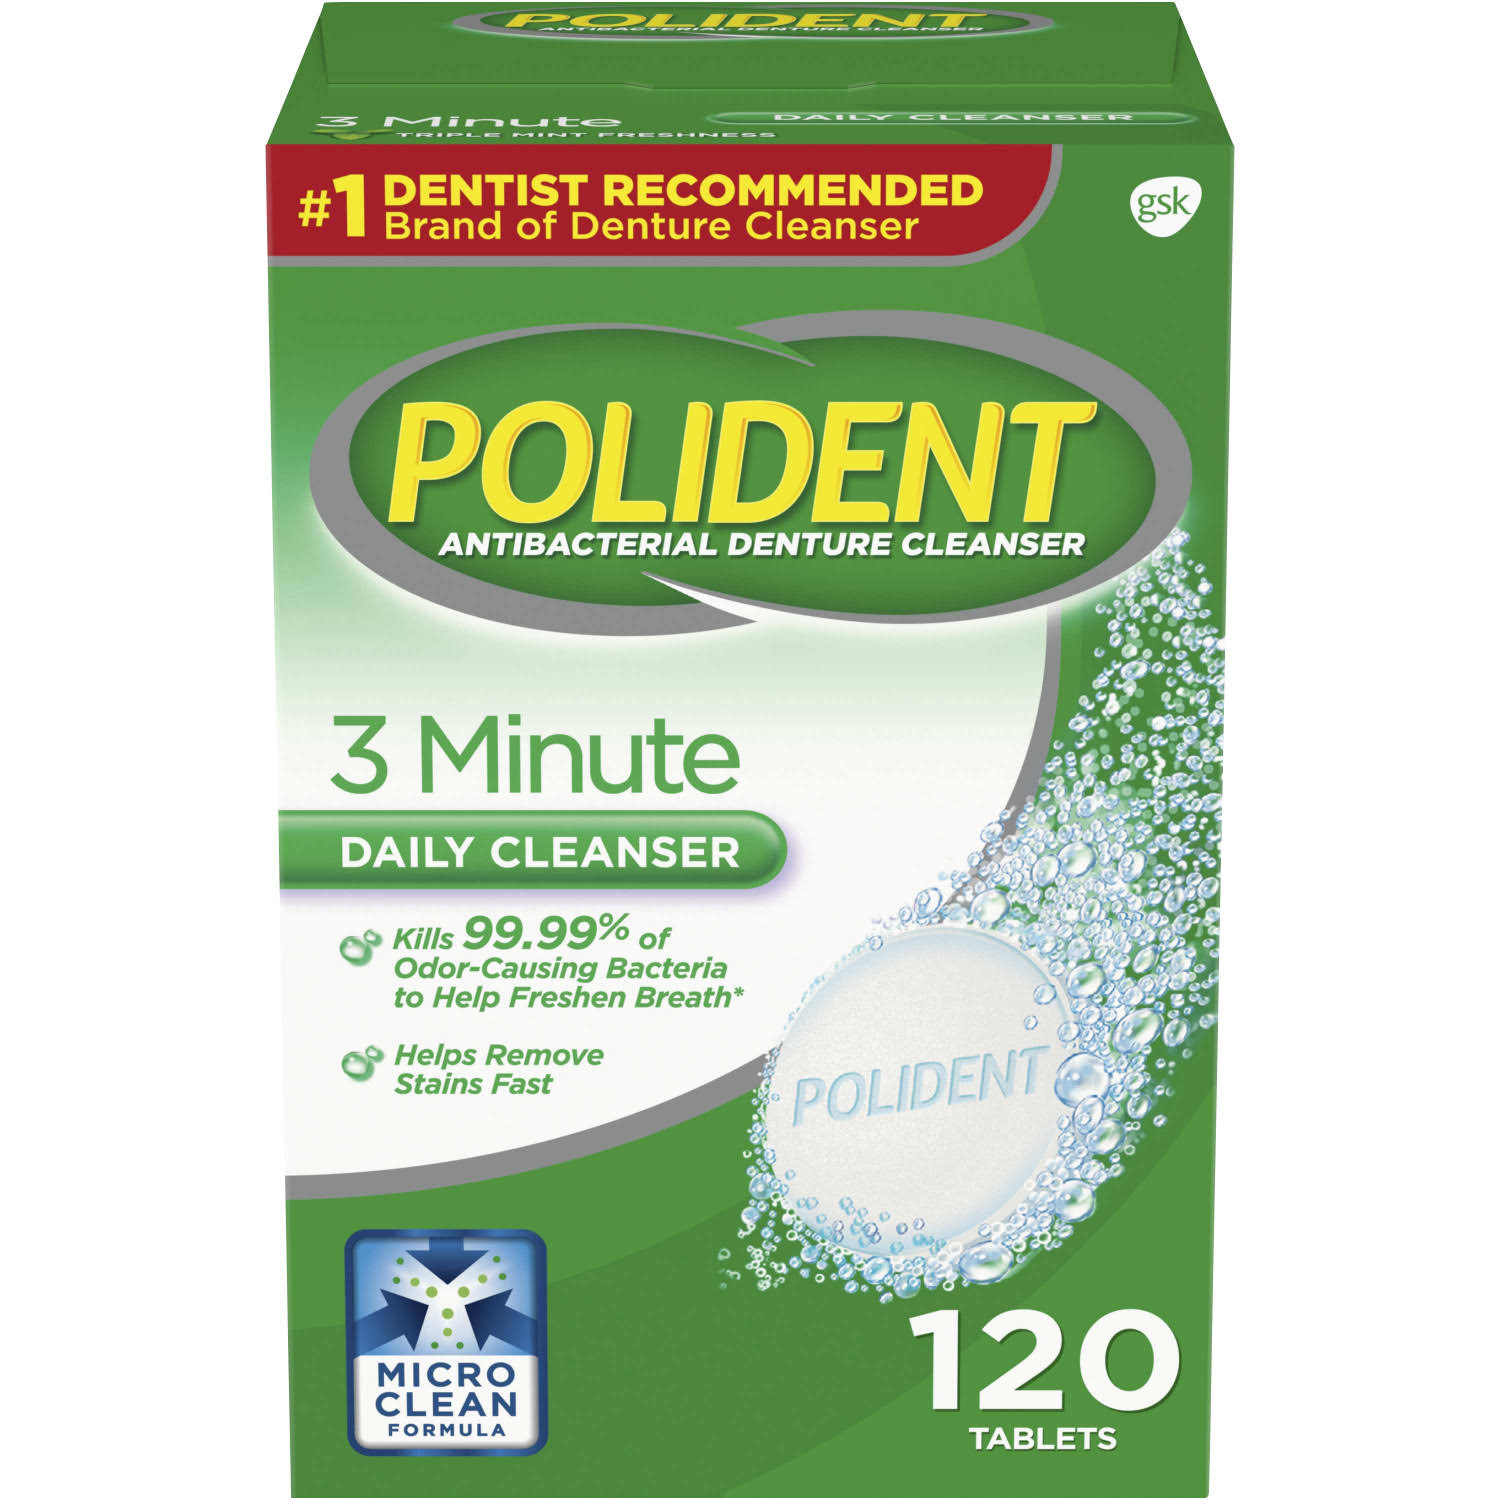 Polident Triple Mint Freshness 3 Minute Antibacterial Denture Cleanser - 120 Tablets